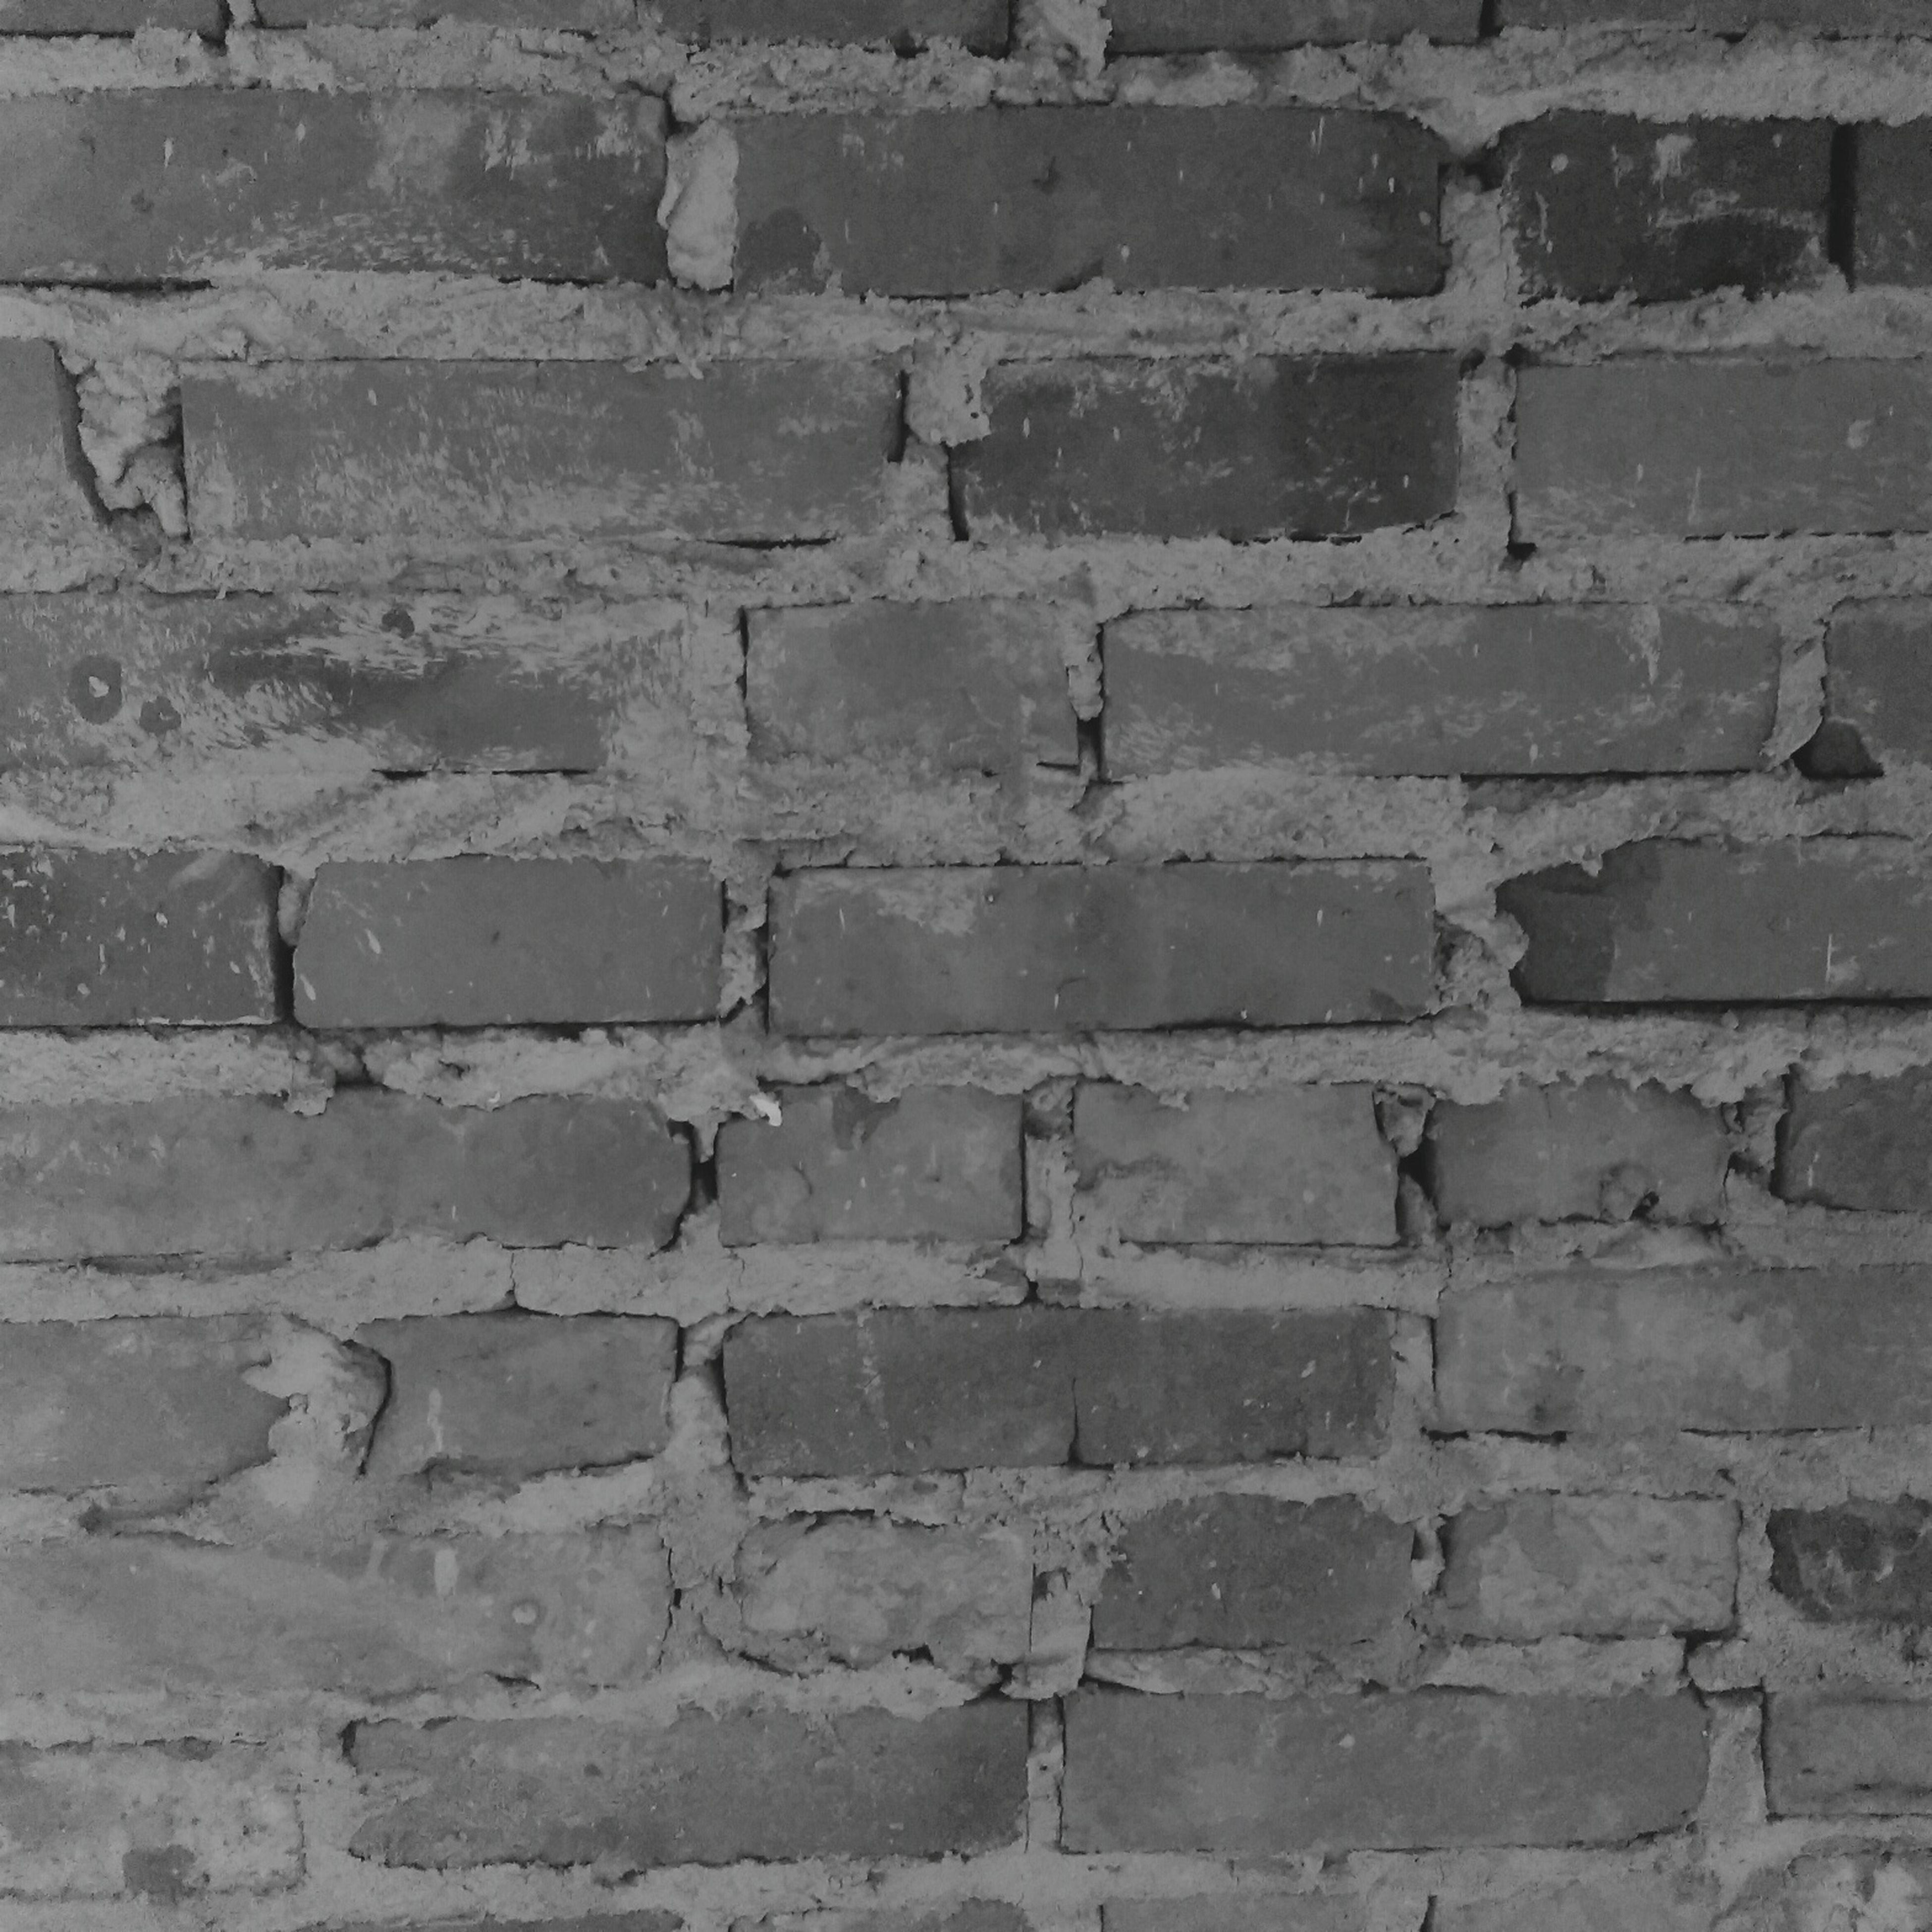 brick wall, backgrounds, architecture, wall - building feature, full frame, built structure, textured, old, weathered, pattern, paint, no people, building exterior, rough, day, outdoors, close-up